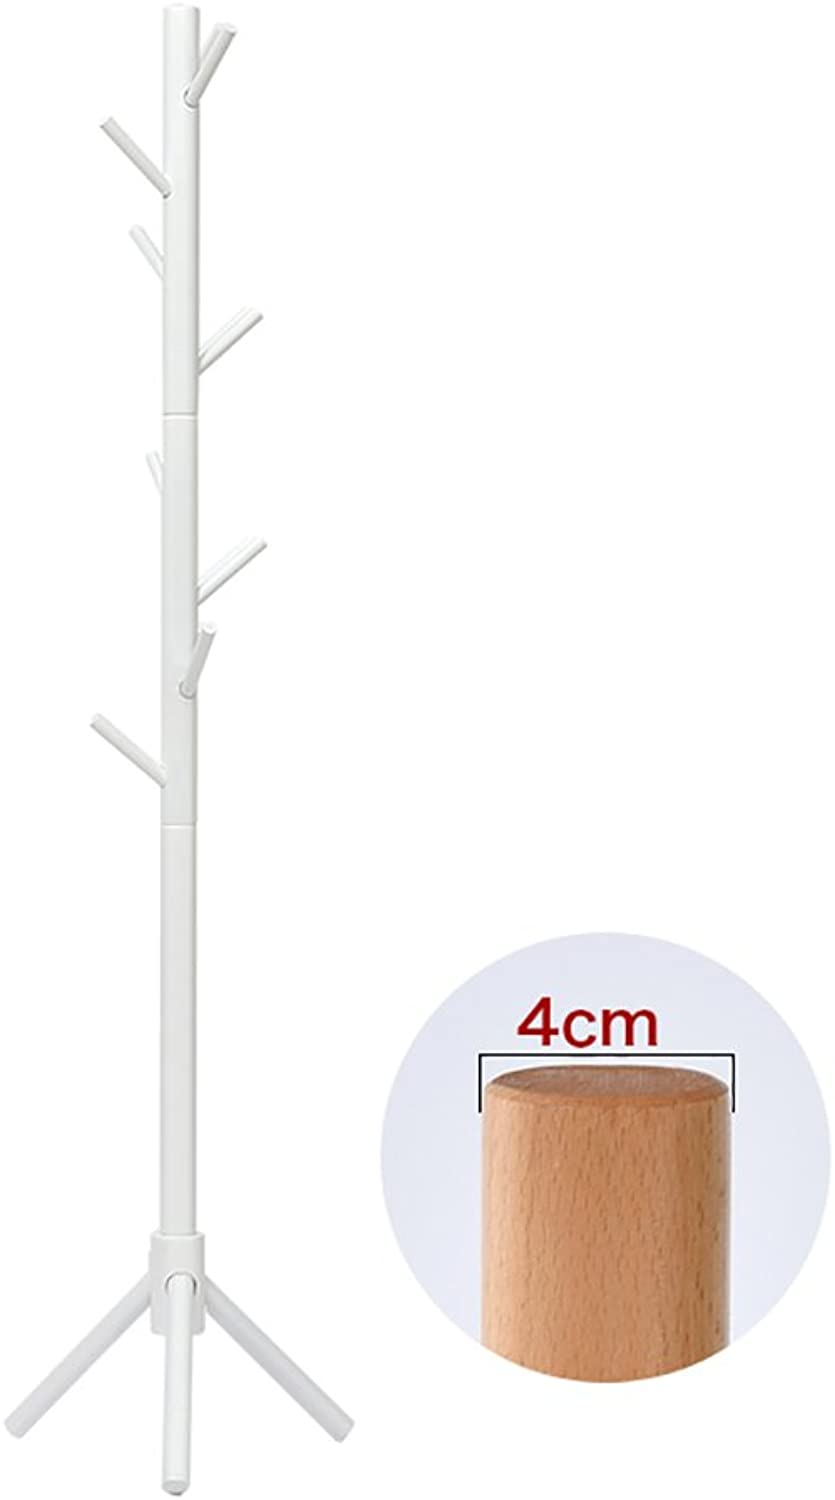 LFF- Solid Wood Coat Rack Simple Modern Floor Hanger Simple Single-Pole Clothes Rack Original color Walnut White Bedroom Wooden Hangers (color   White, Size   M)